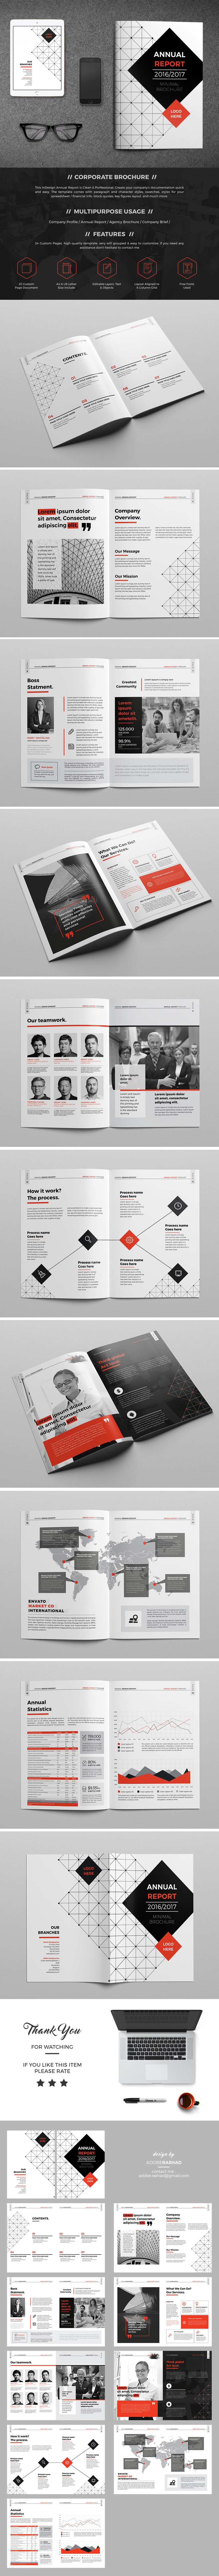 Minimal Red & Black Brochure Template